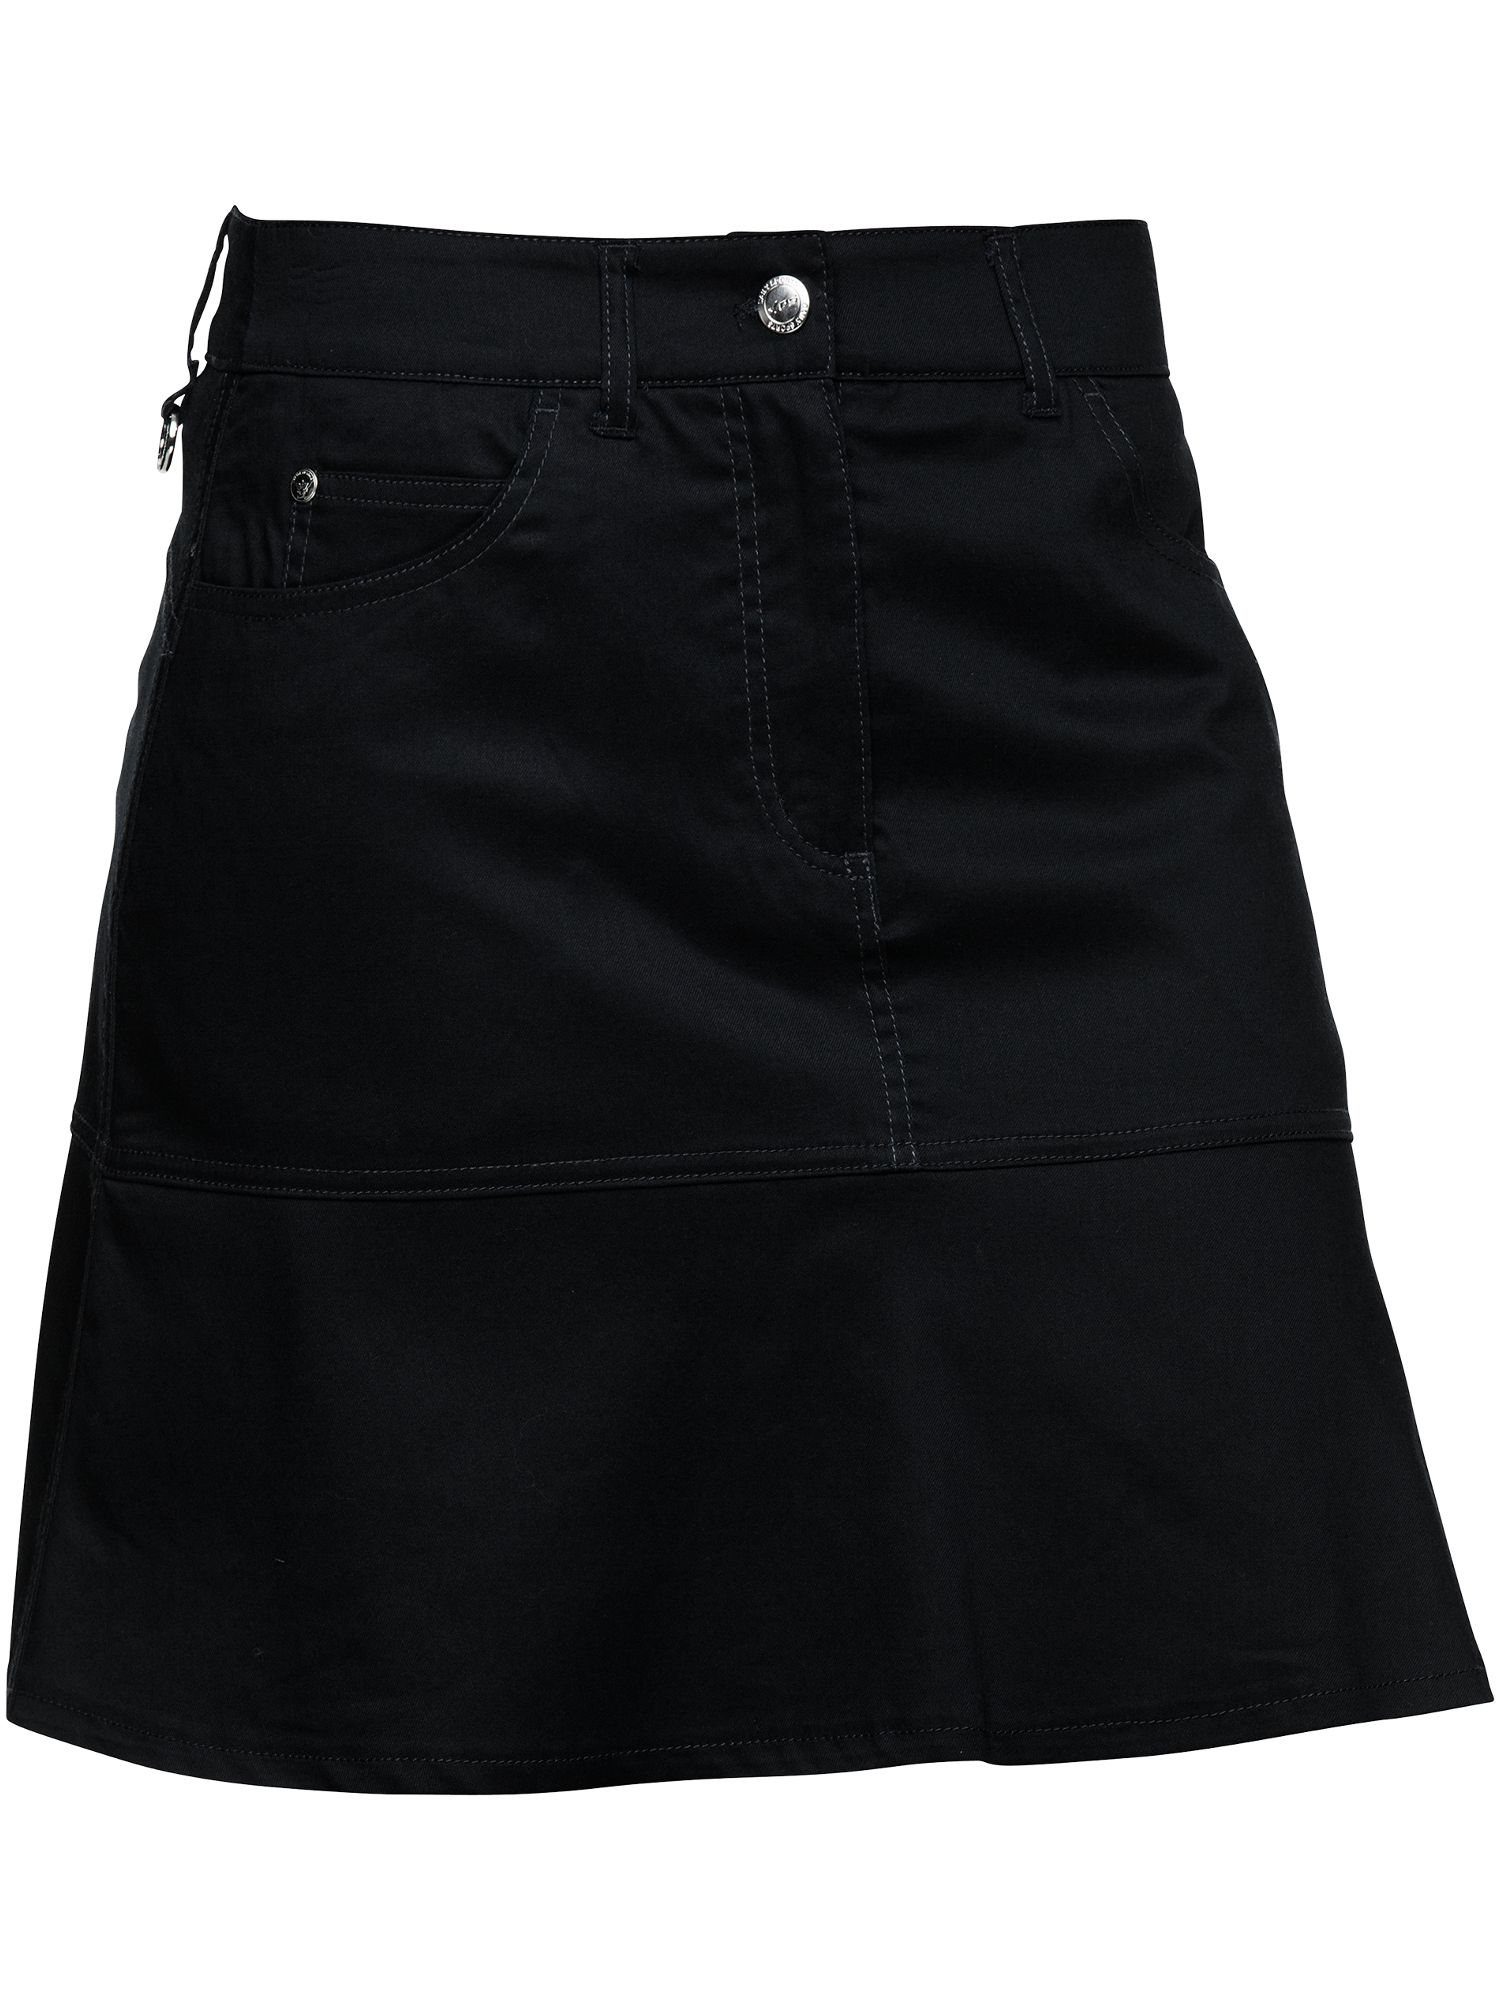 Daily Sports Daily Sports Swing skort, Black